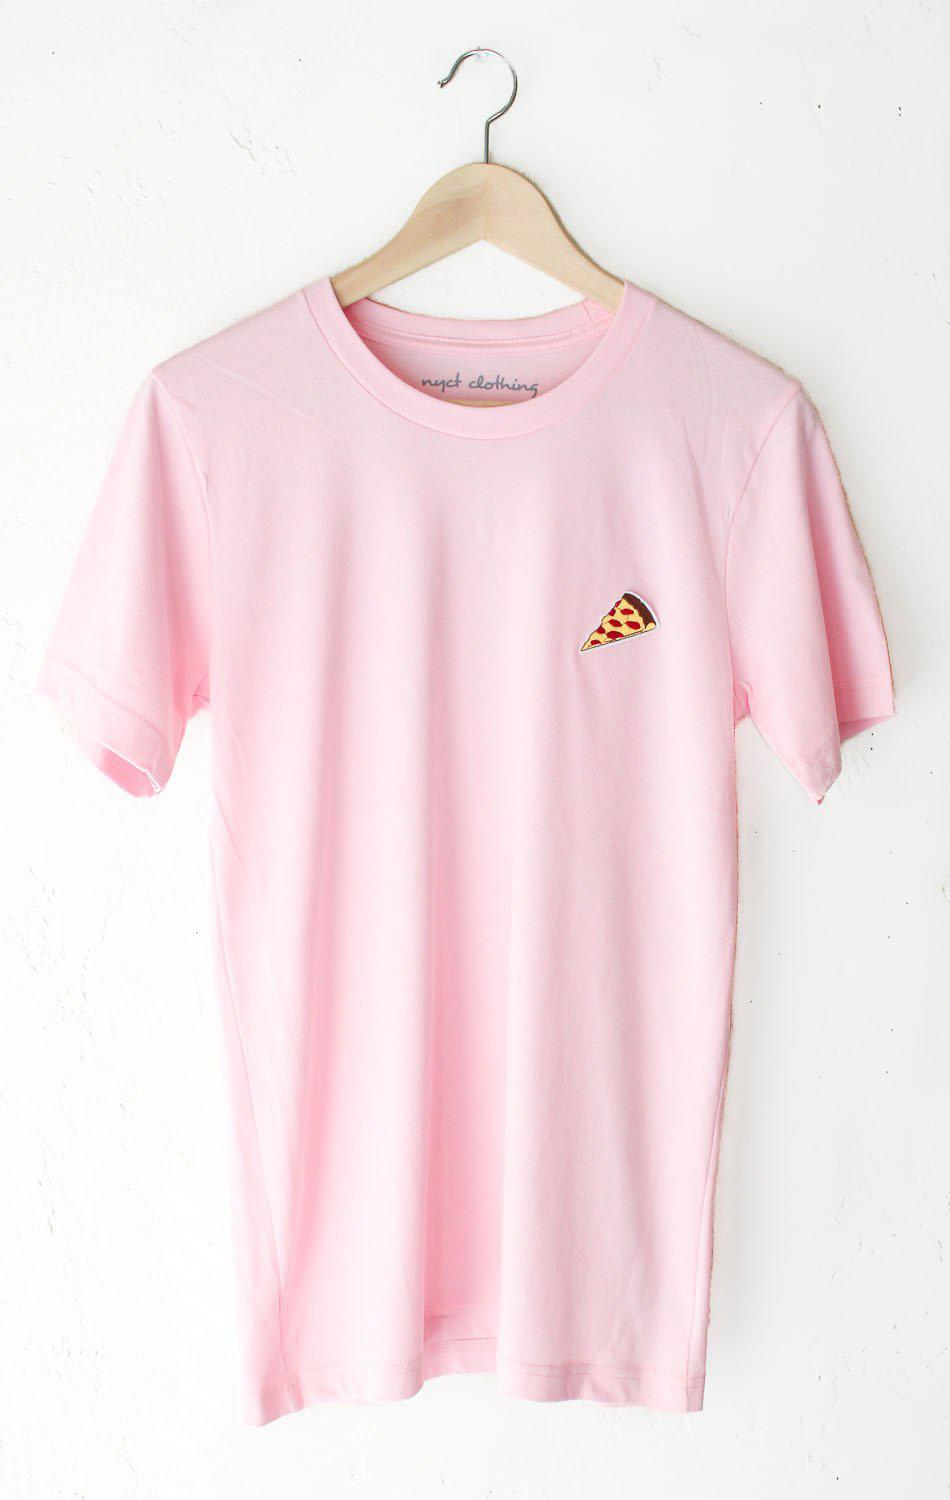 7cd4526ad1 Pizza Tee - Pink from NYCT Clothing